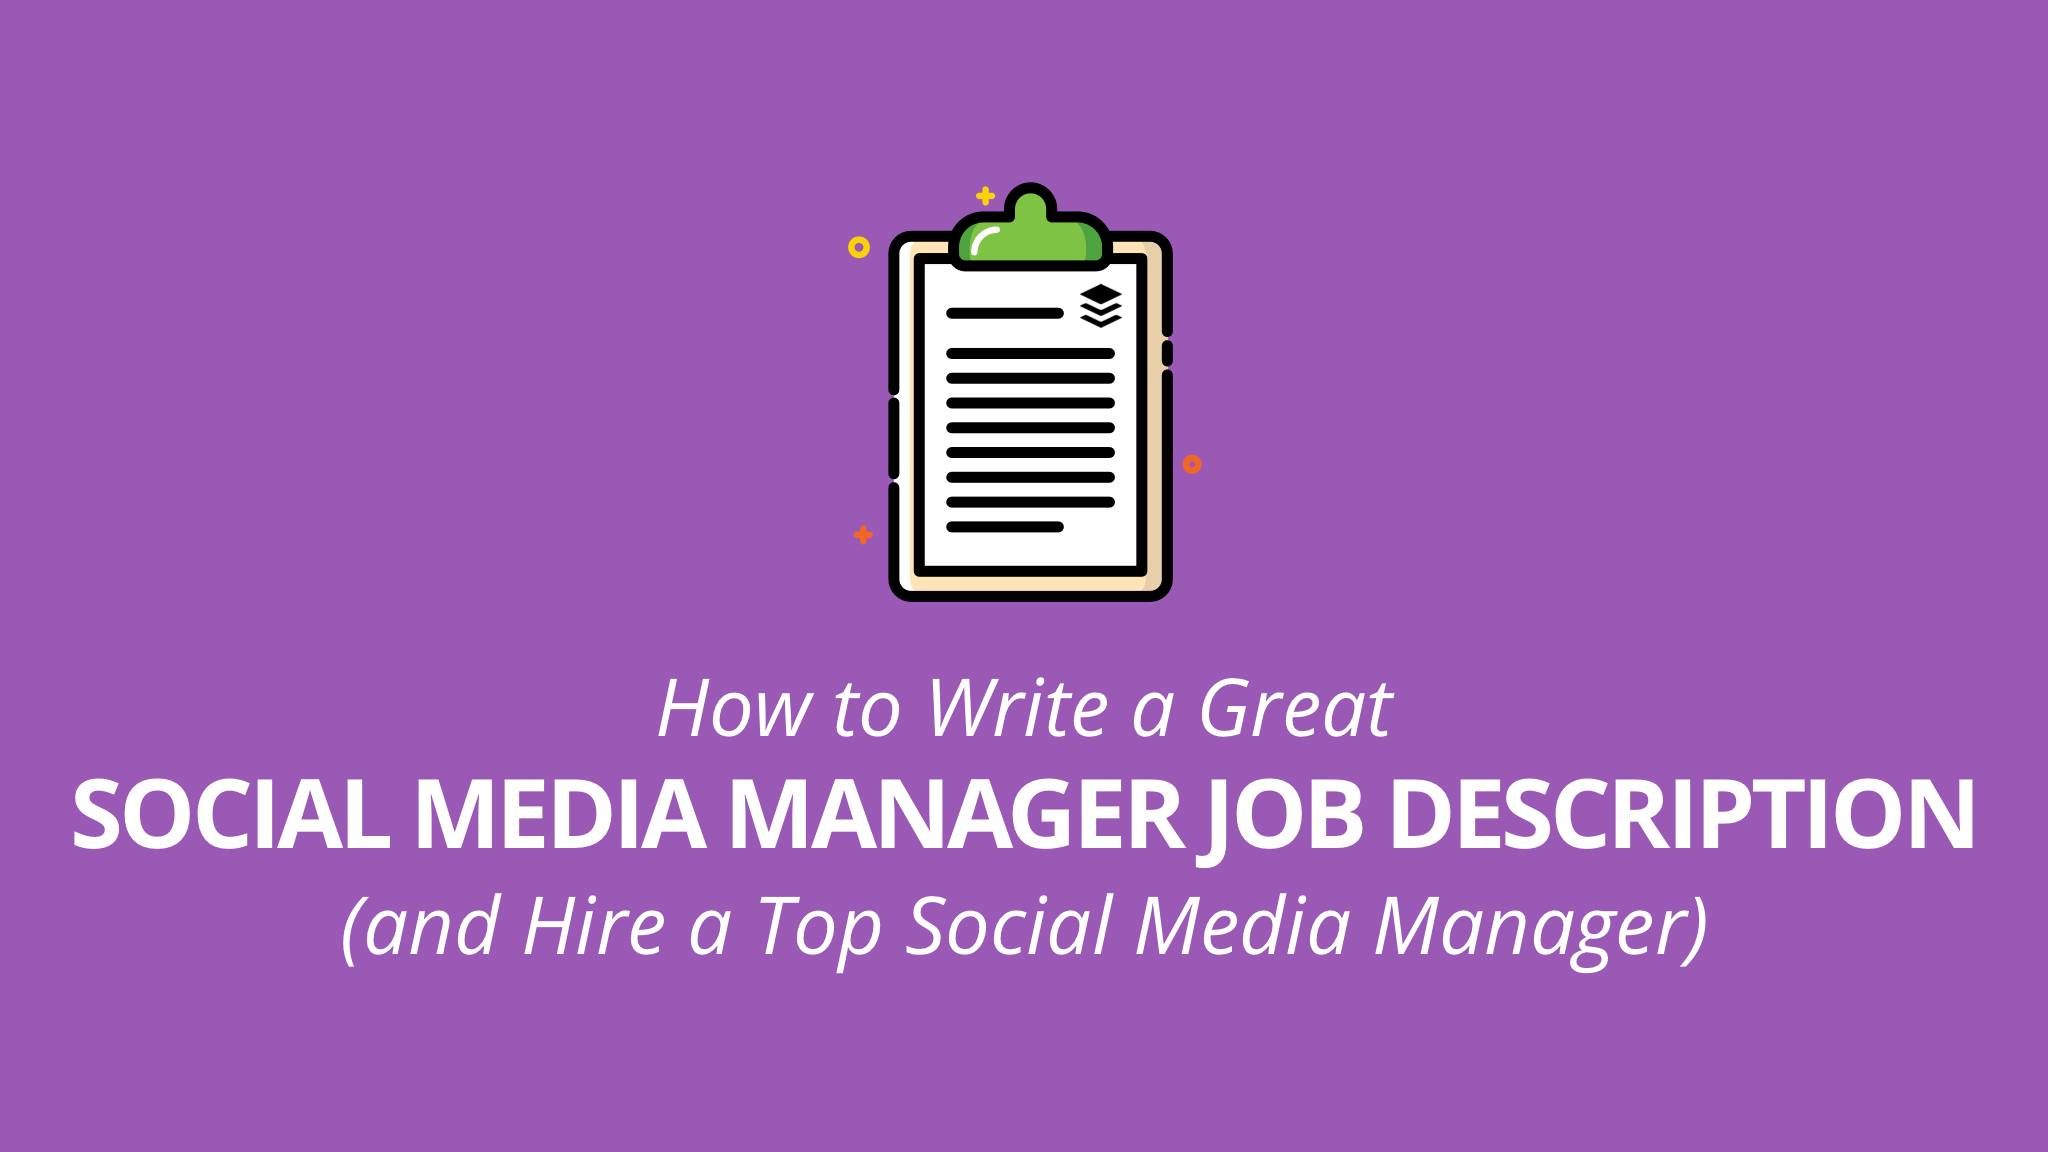 Social Media Manager Job Description Guide